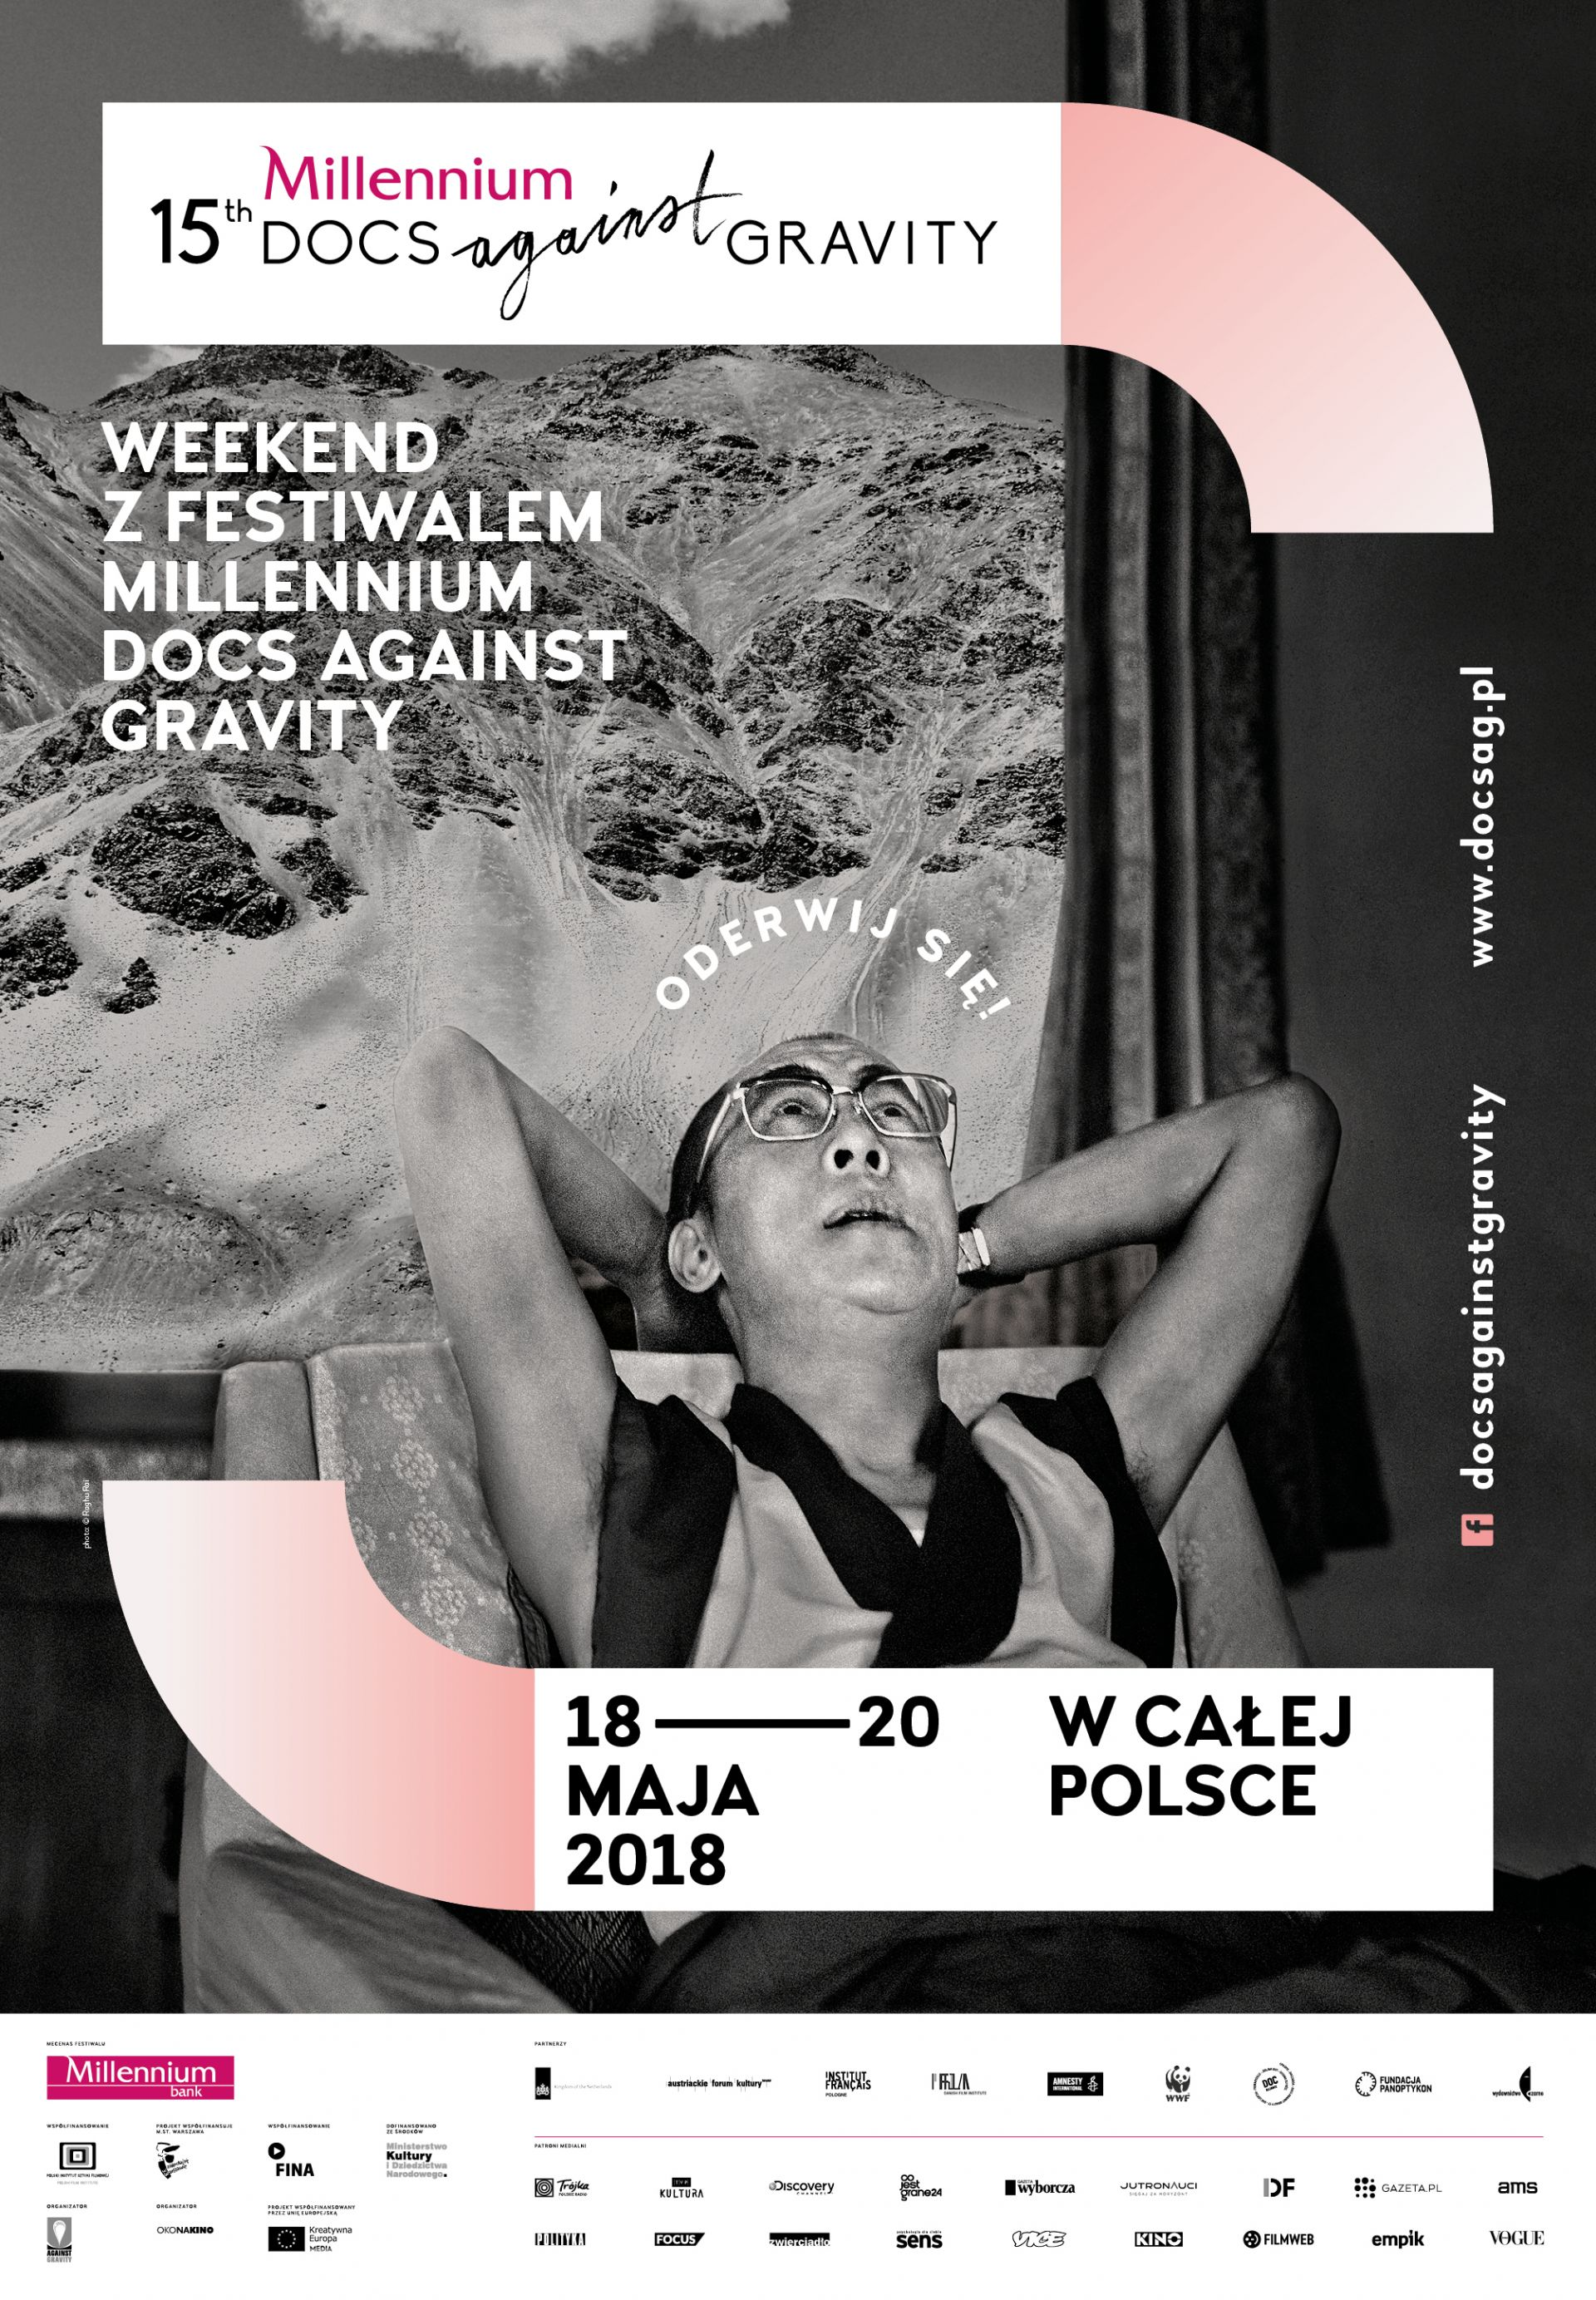 Weekend Z Millennium Docs Against Gravity Ezamoscpl